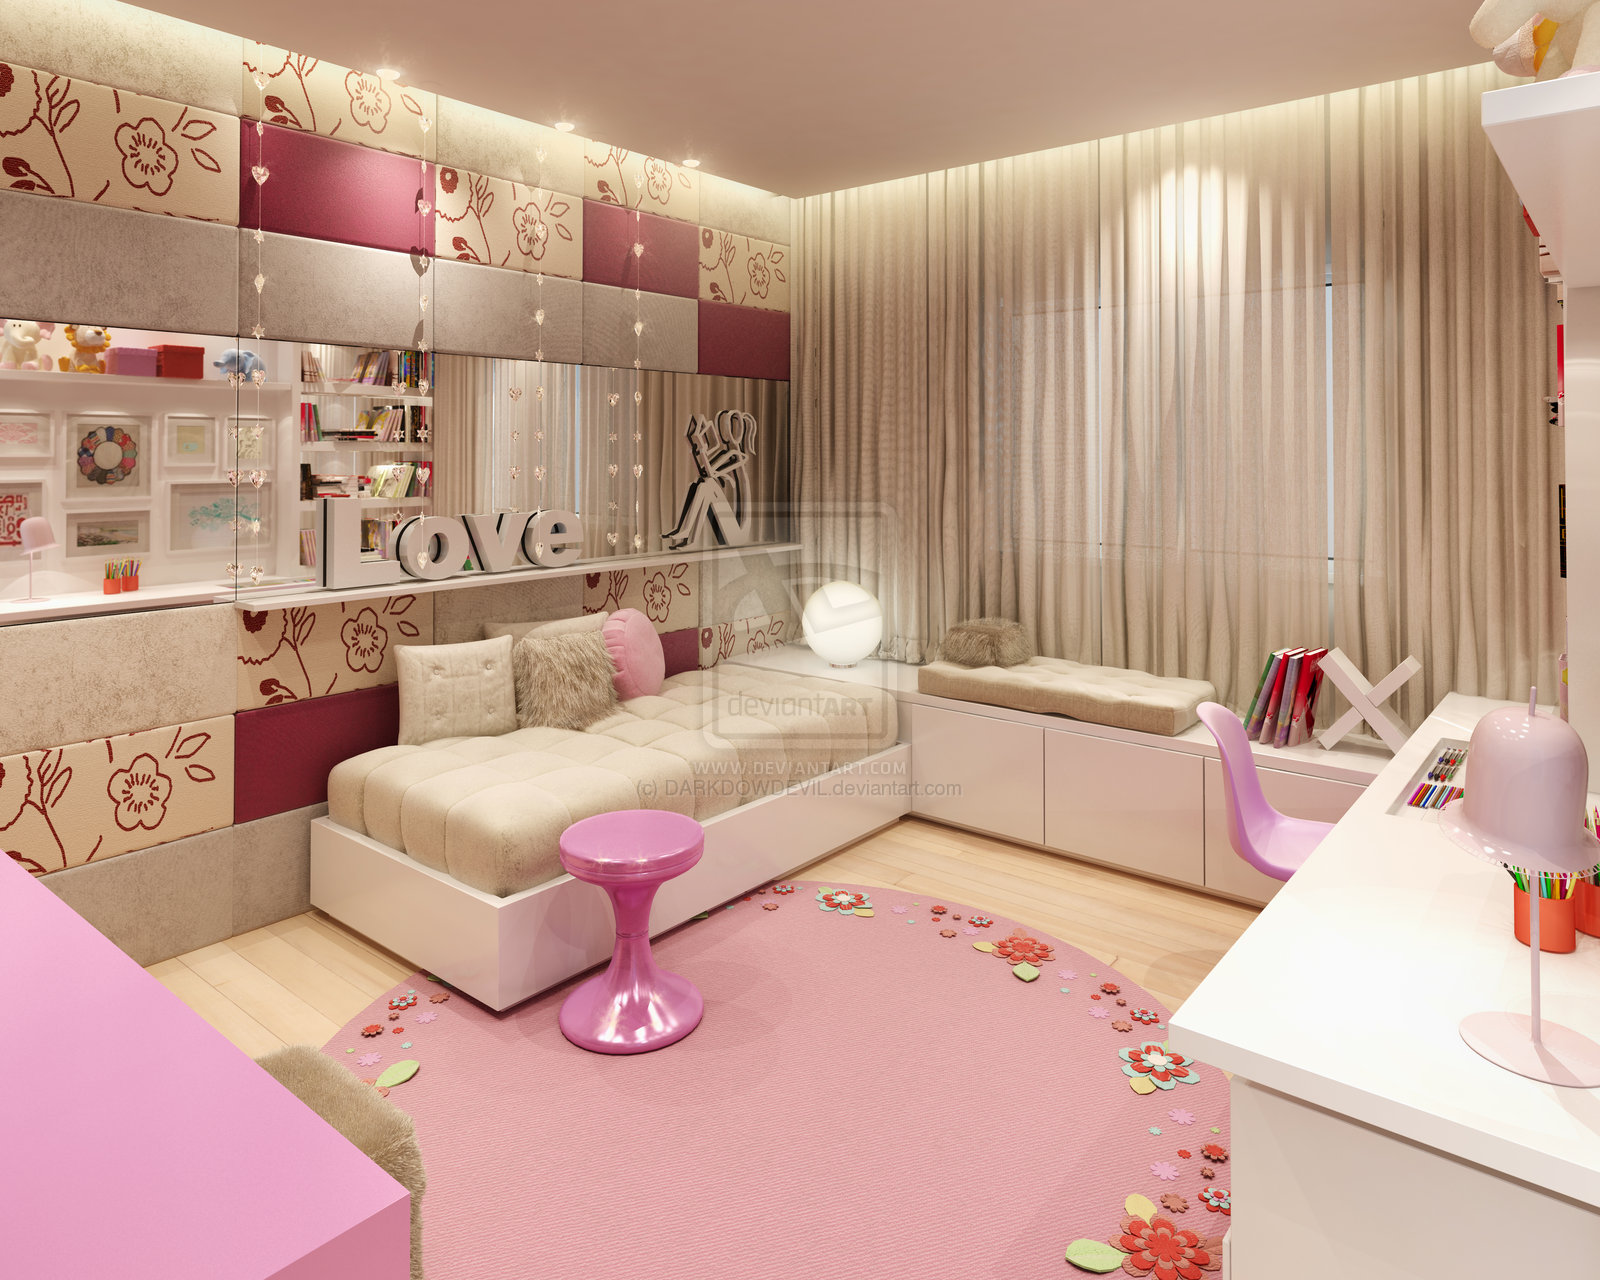 Best girl bedrooms in the world home decor and interior for Bedroom ideas for a girl